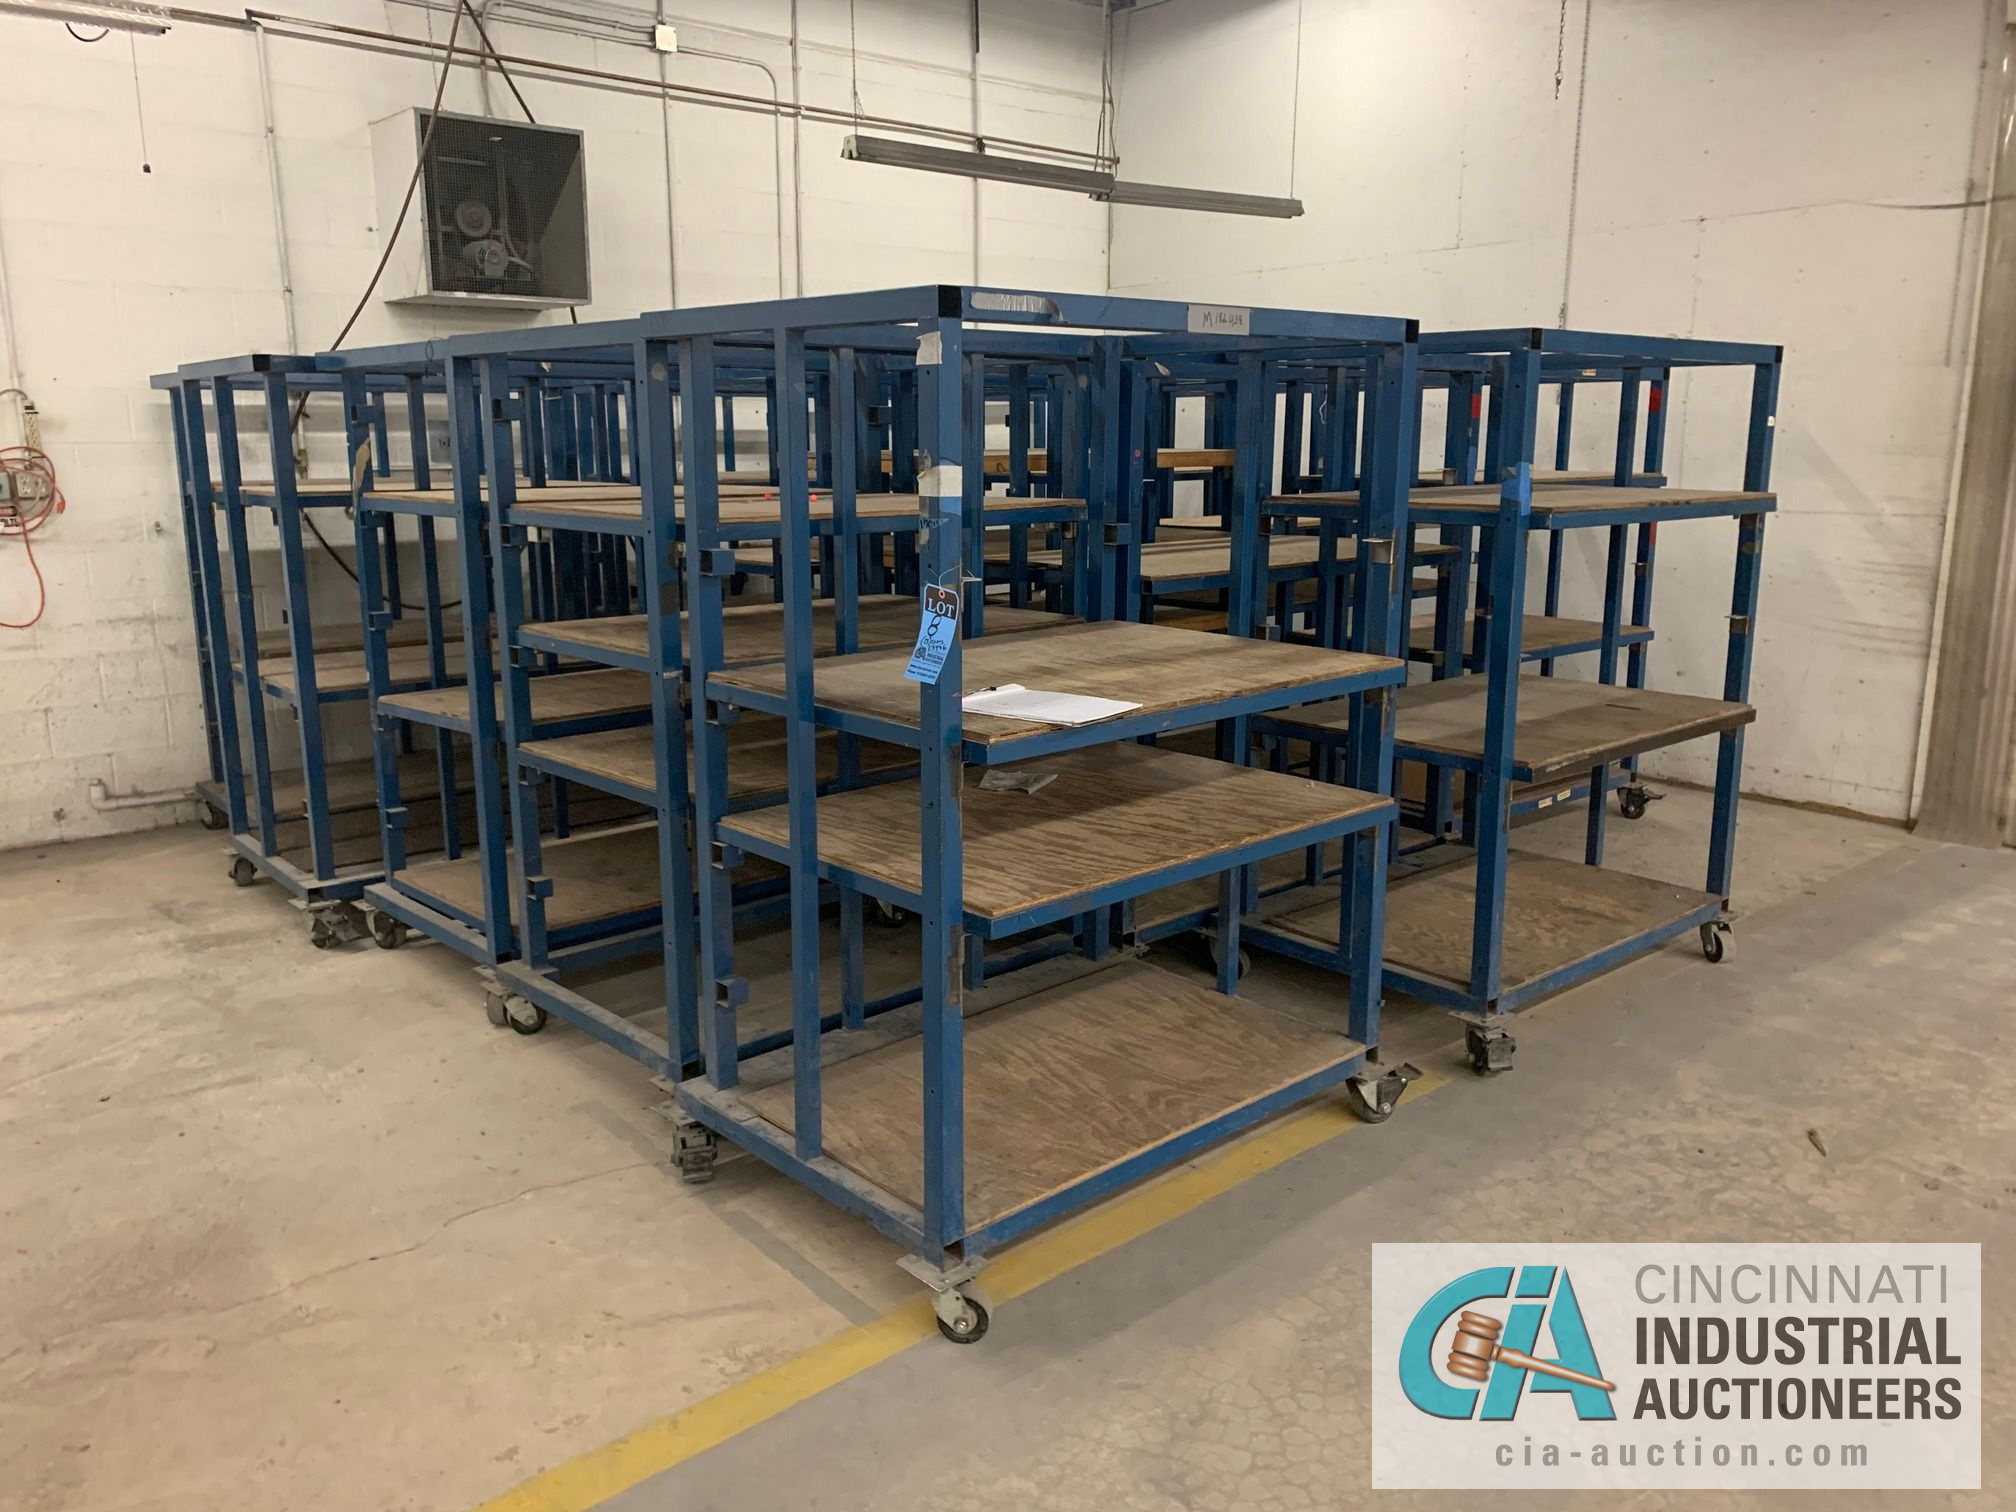 3' X 4' X 6' HIGH APPROX. MULTI-SHELF CARTS